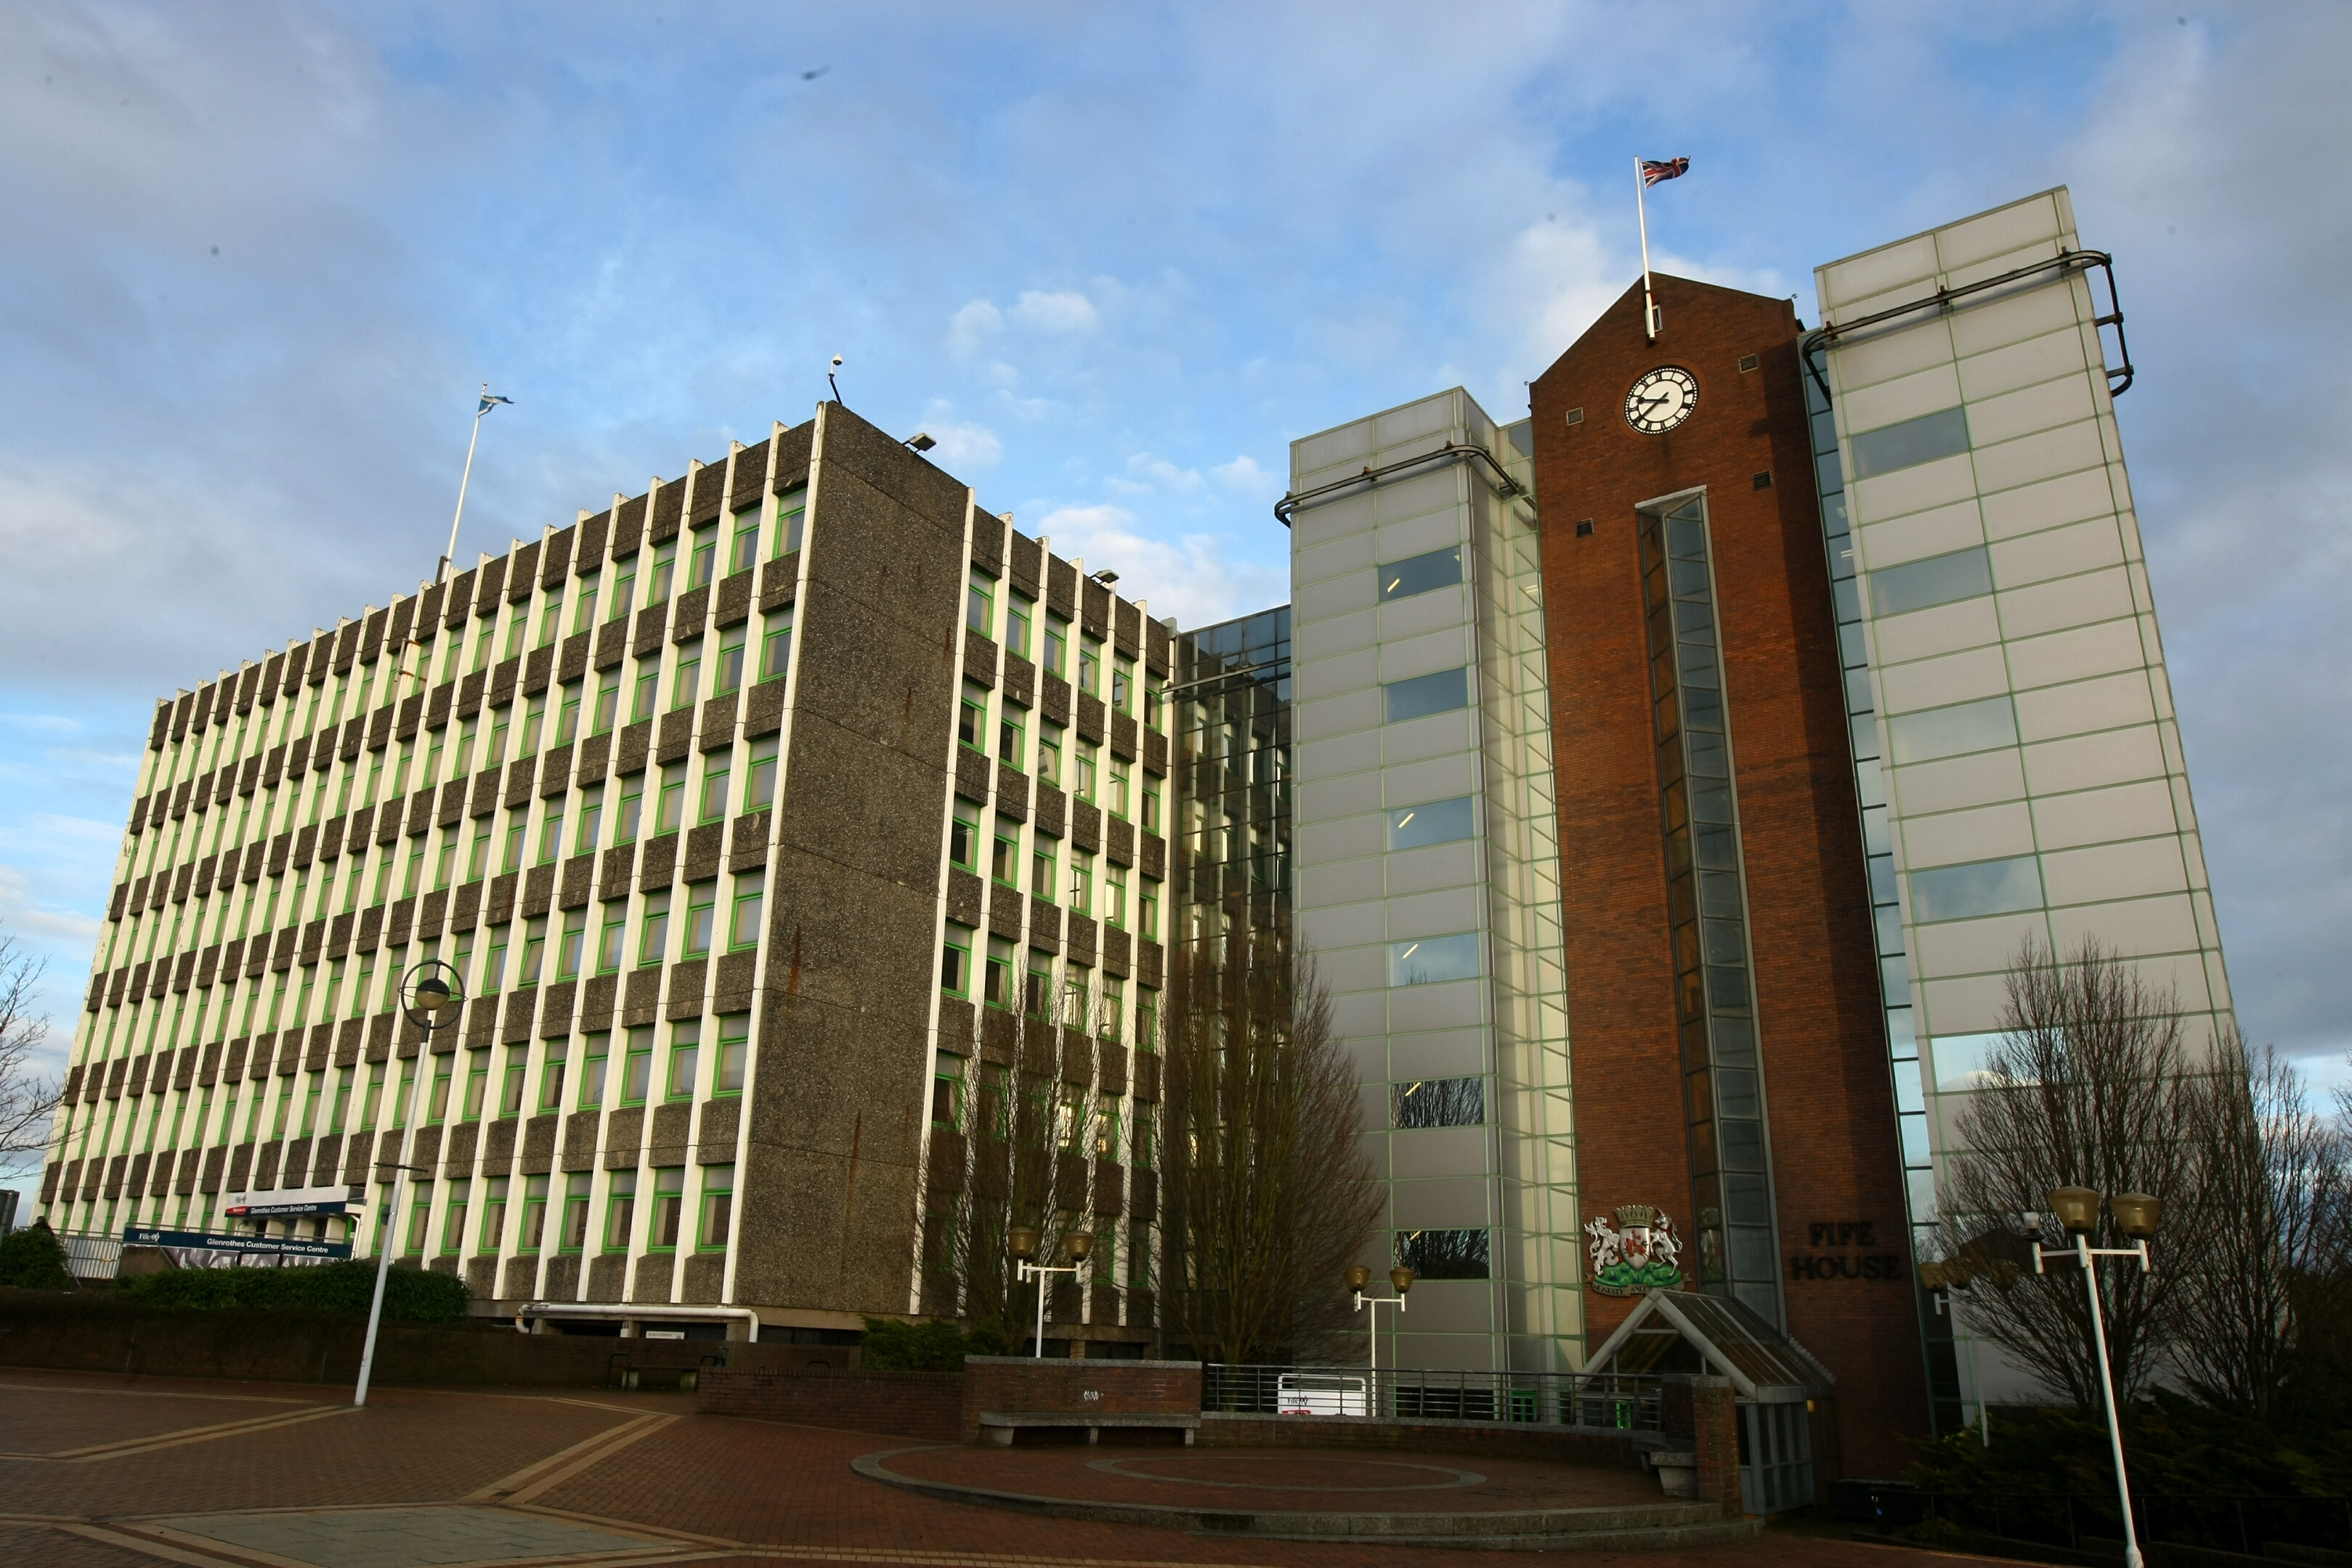 Fife House, headquarters of Fife Council.